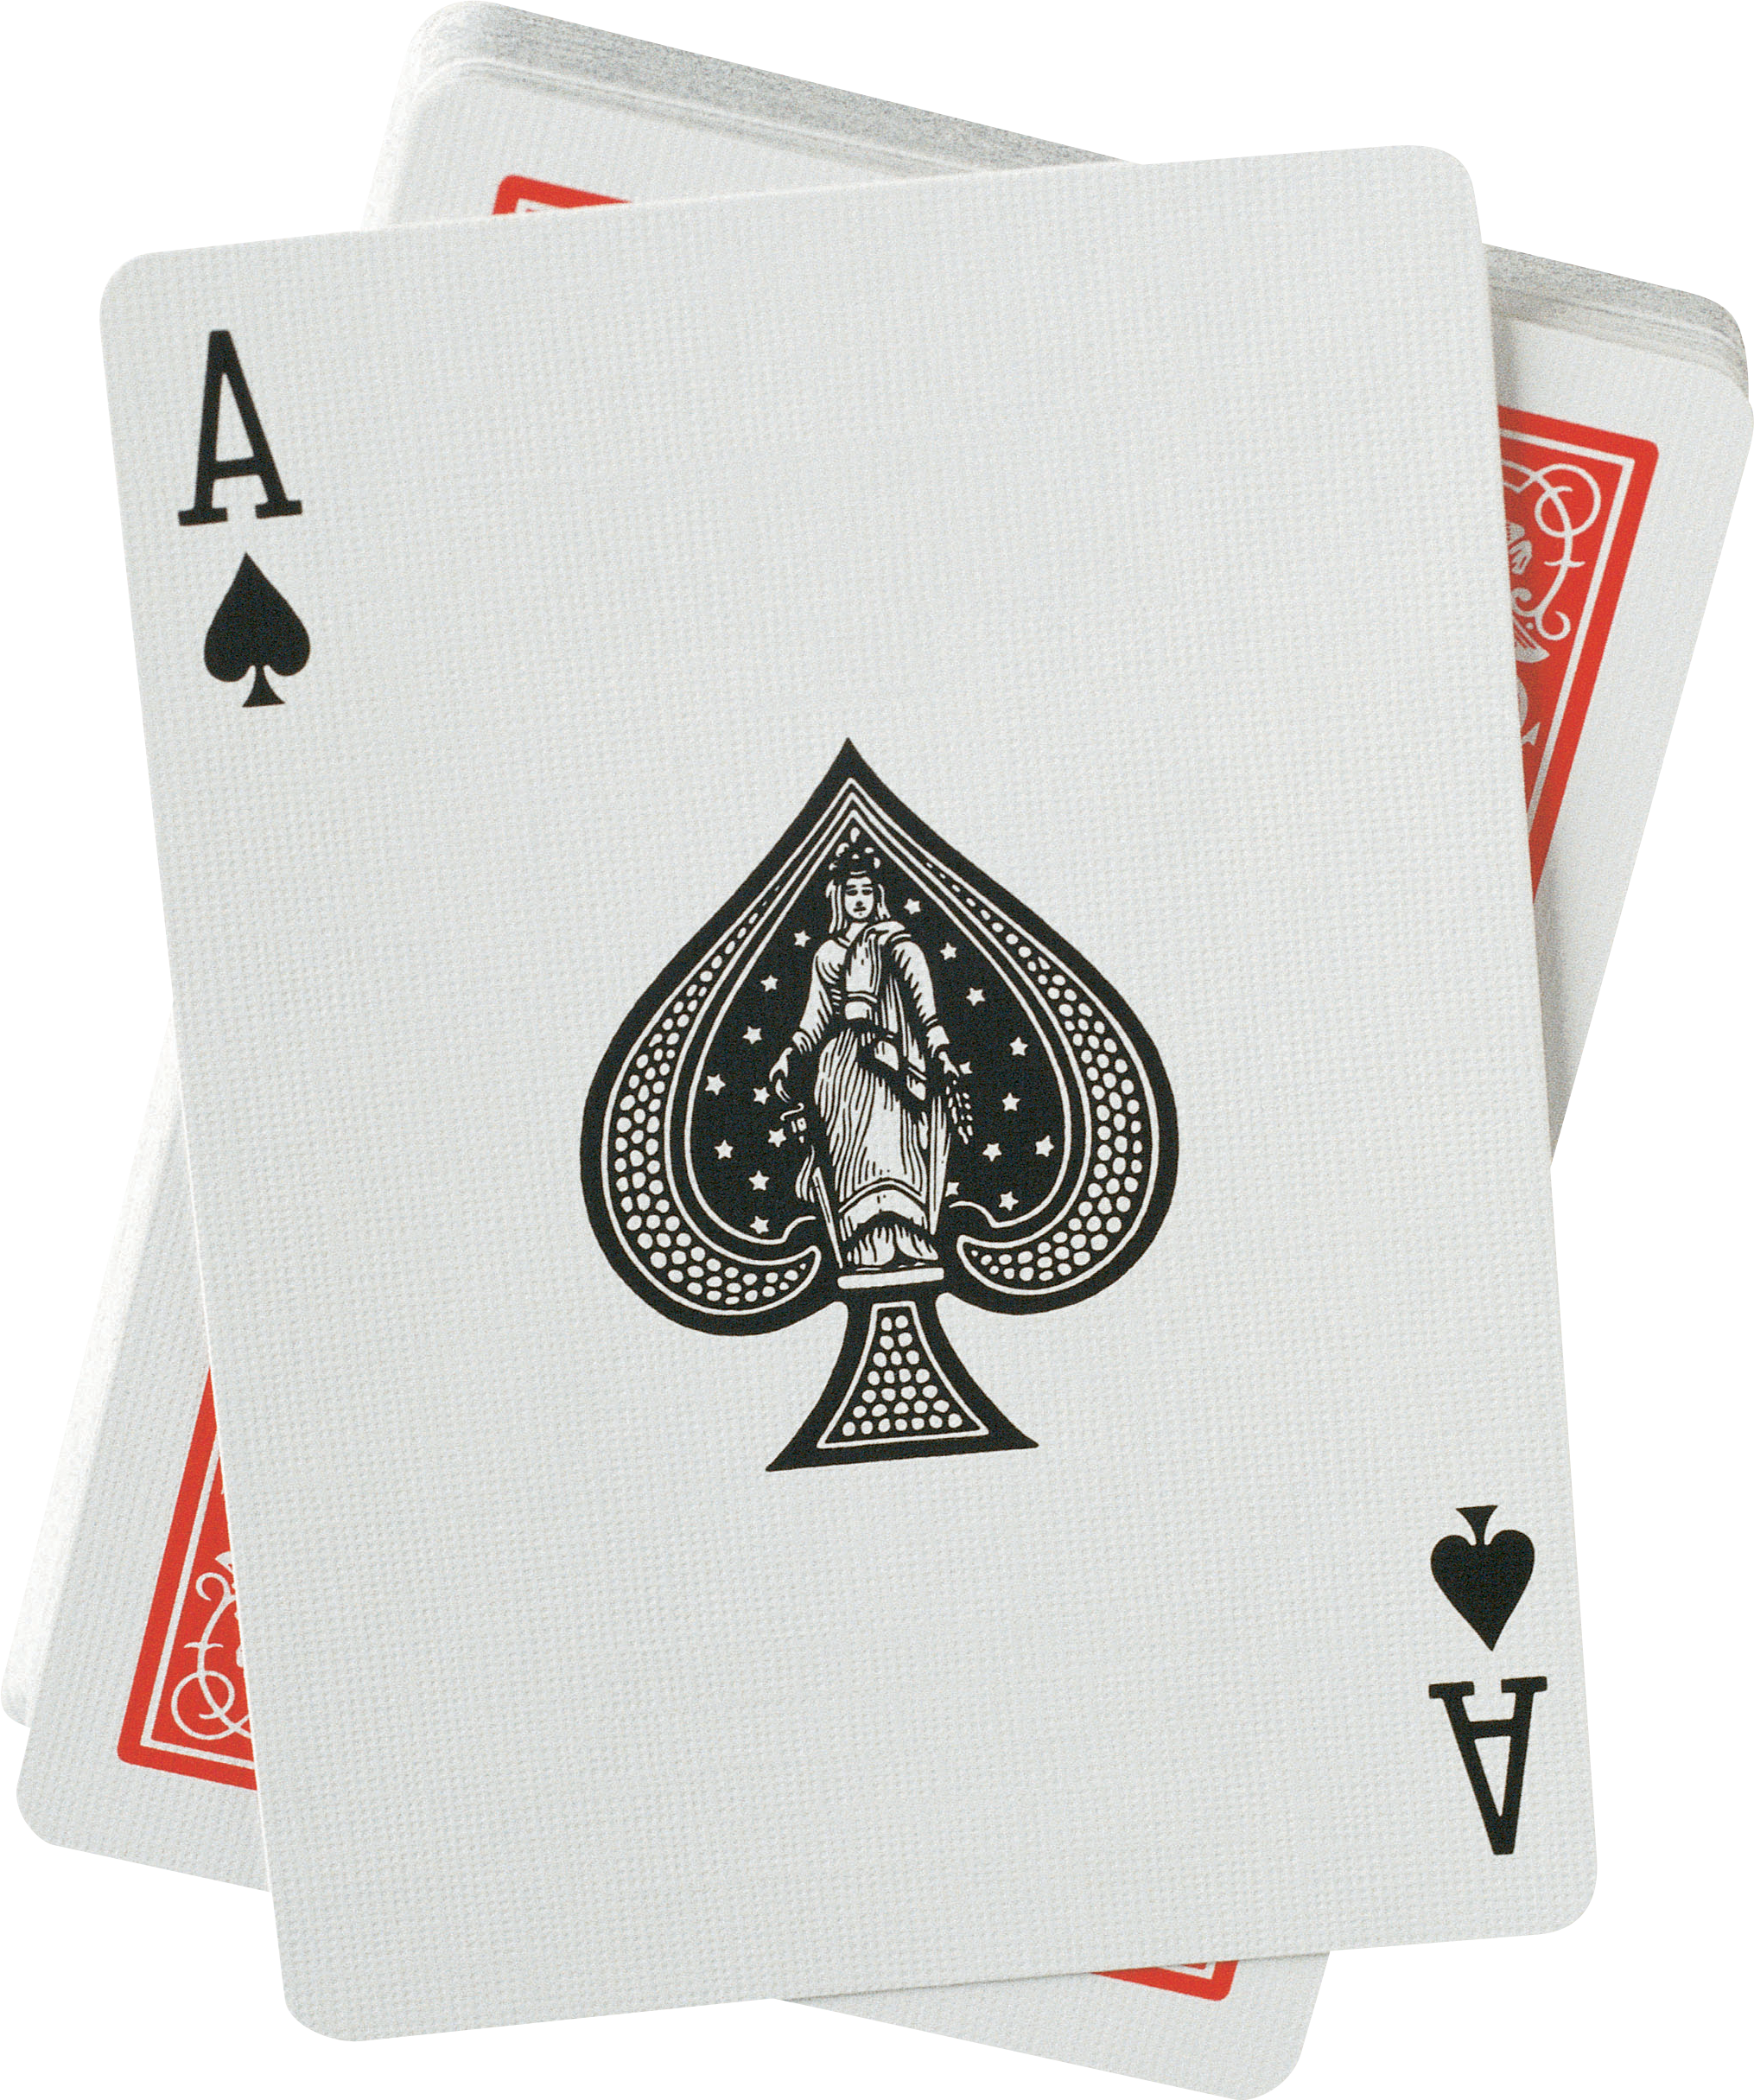 Poker card png. Cards images free download